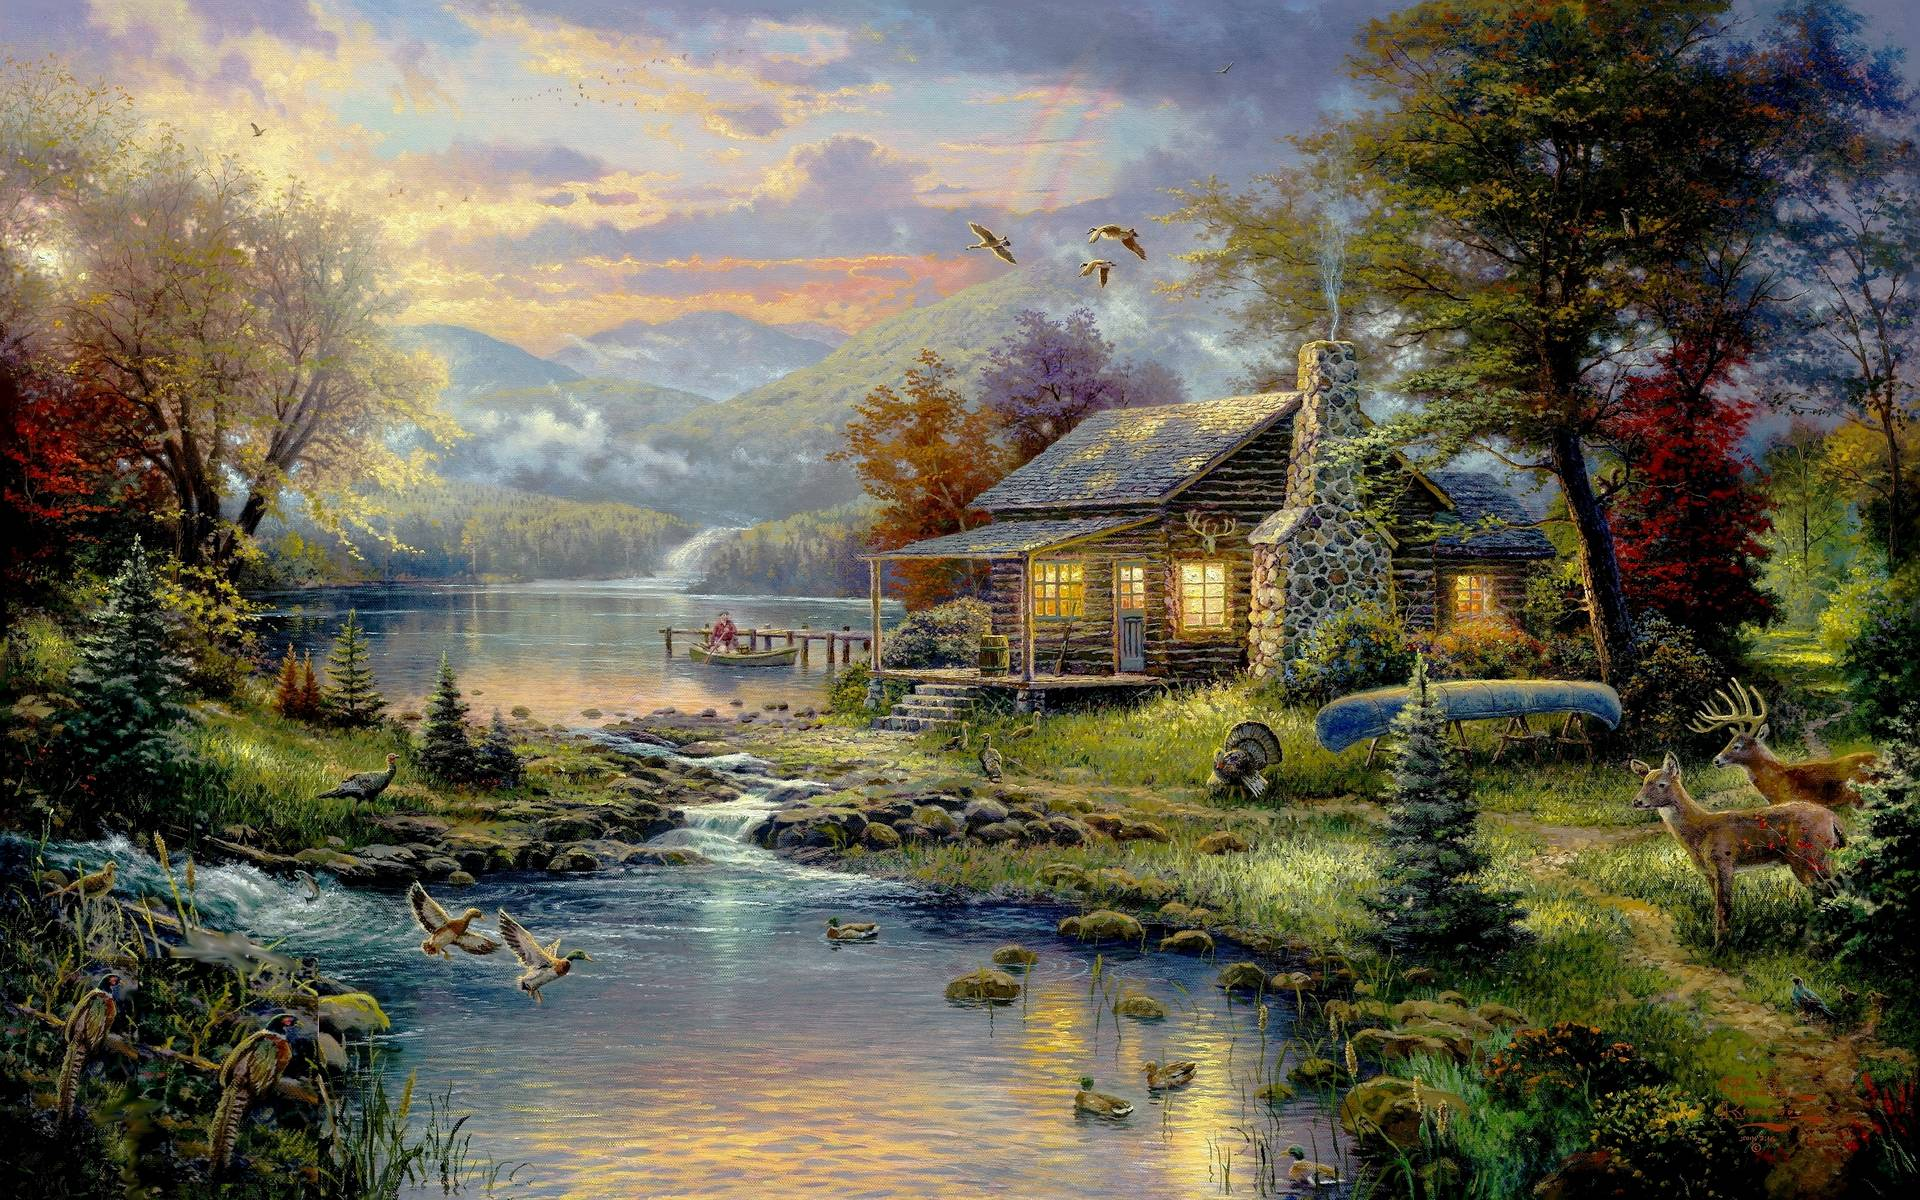 Thomas Kinkade Wallpapers - Wallpaper Cave